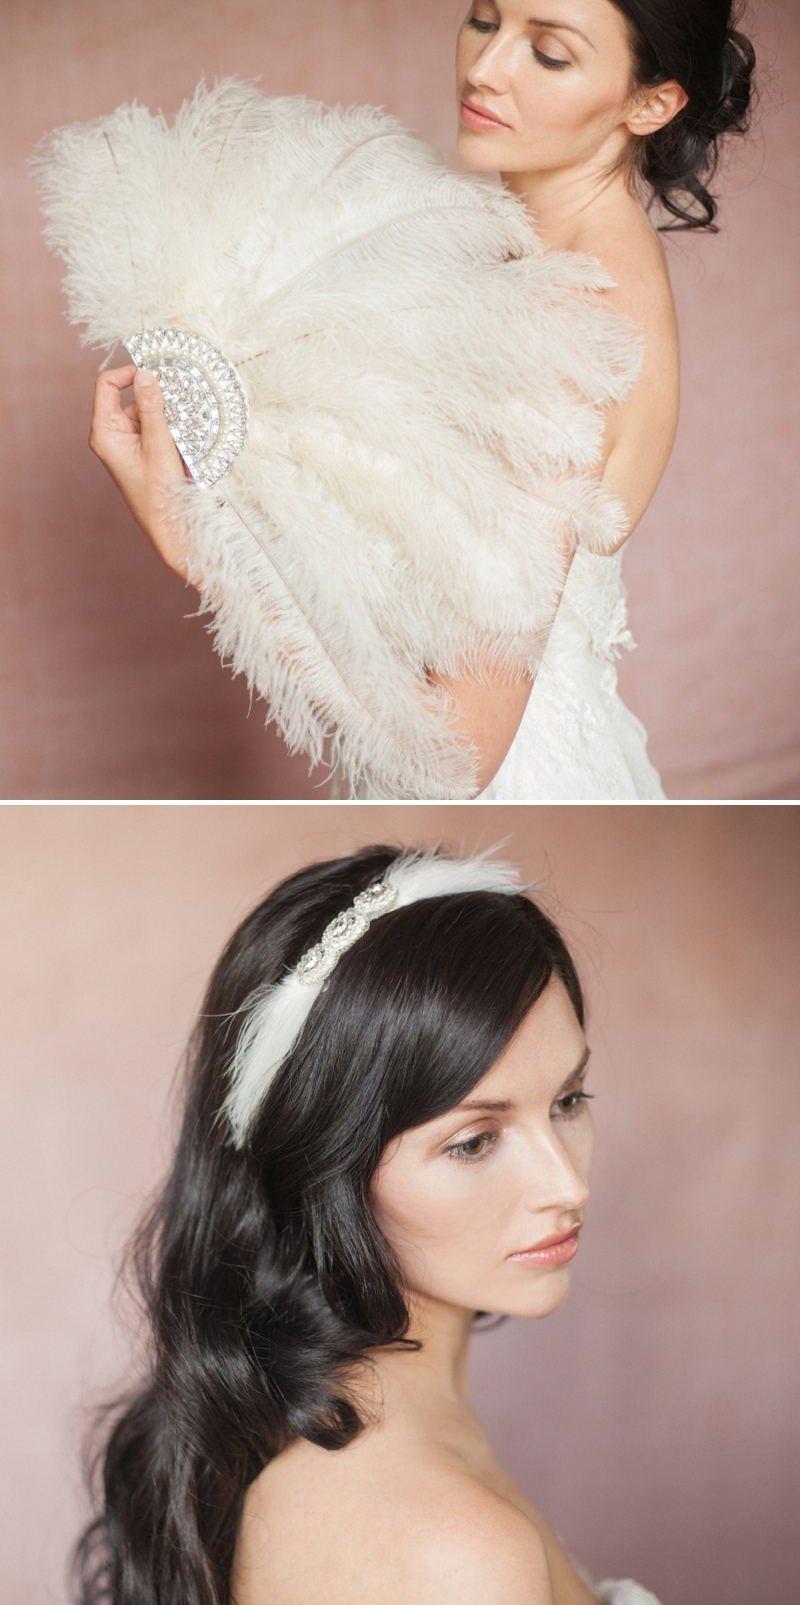 Britten 2014 Liberte Collection vintage inspired bridal wedding accessories headpieces 0154 Timeless And Effortlessly Classic Heirlooms.